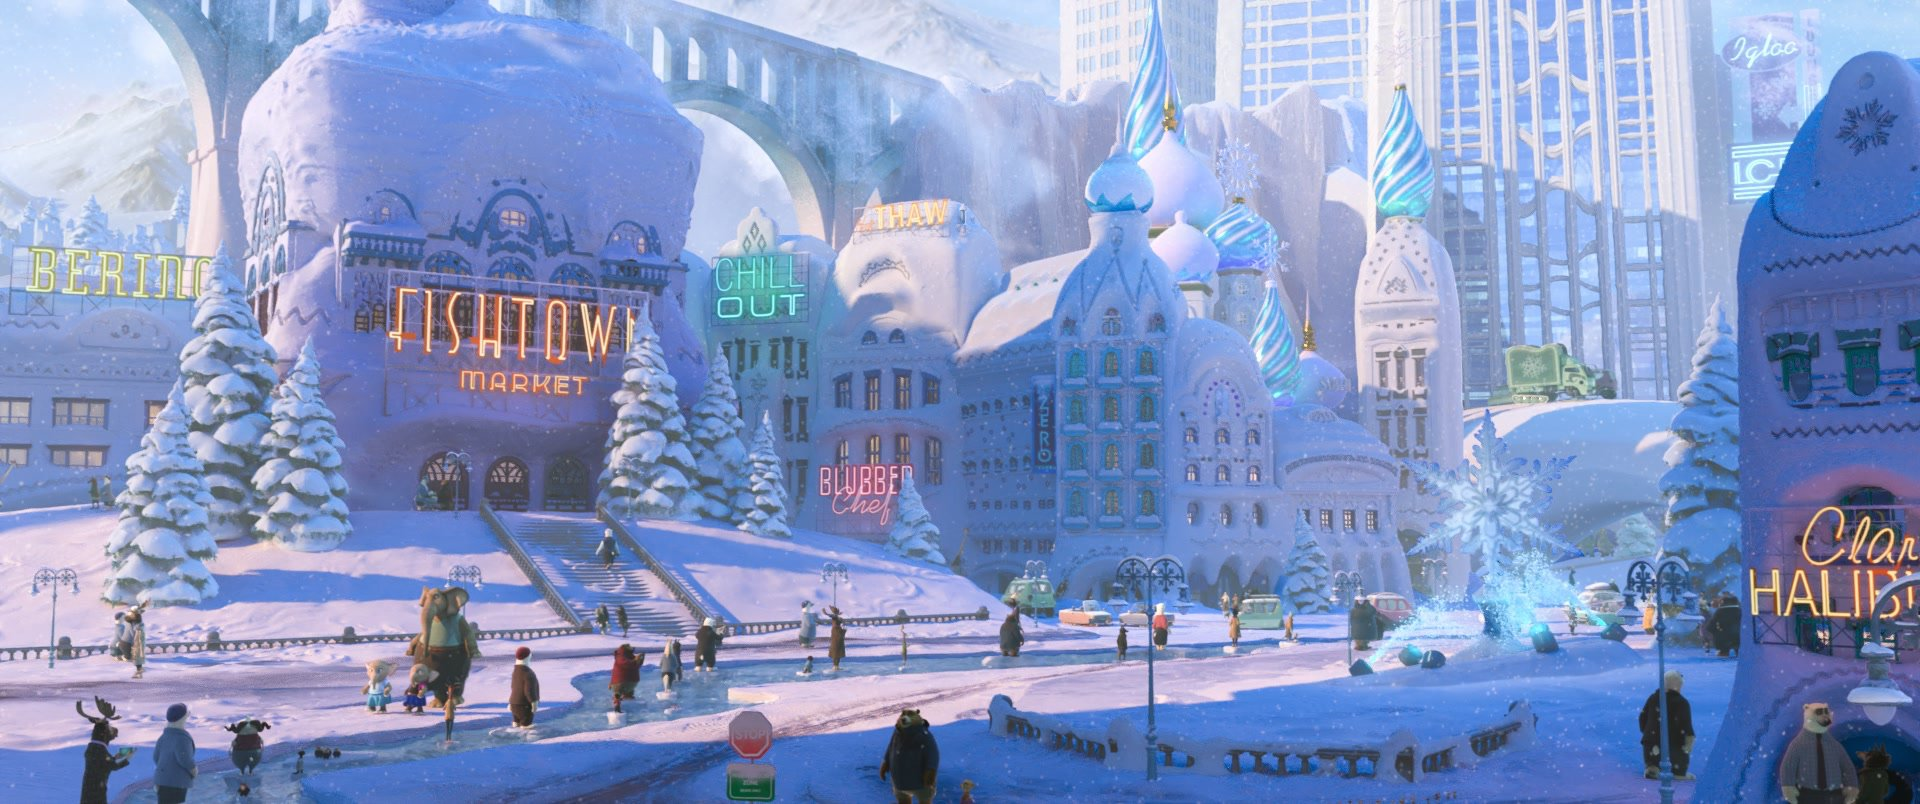 an analysis of animation in the movies frozen and zootopia Zootopia (also known as zootropolis in some european countries and the middle east) is a 2016 american 3d computer-animated adventure-comedy film produced by walt disney animation studios and distributed by walt disney pictures.